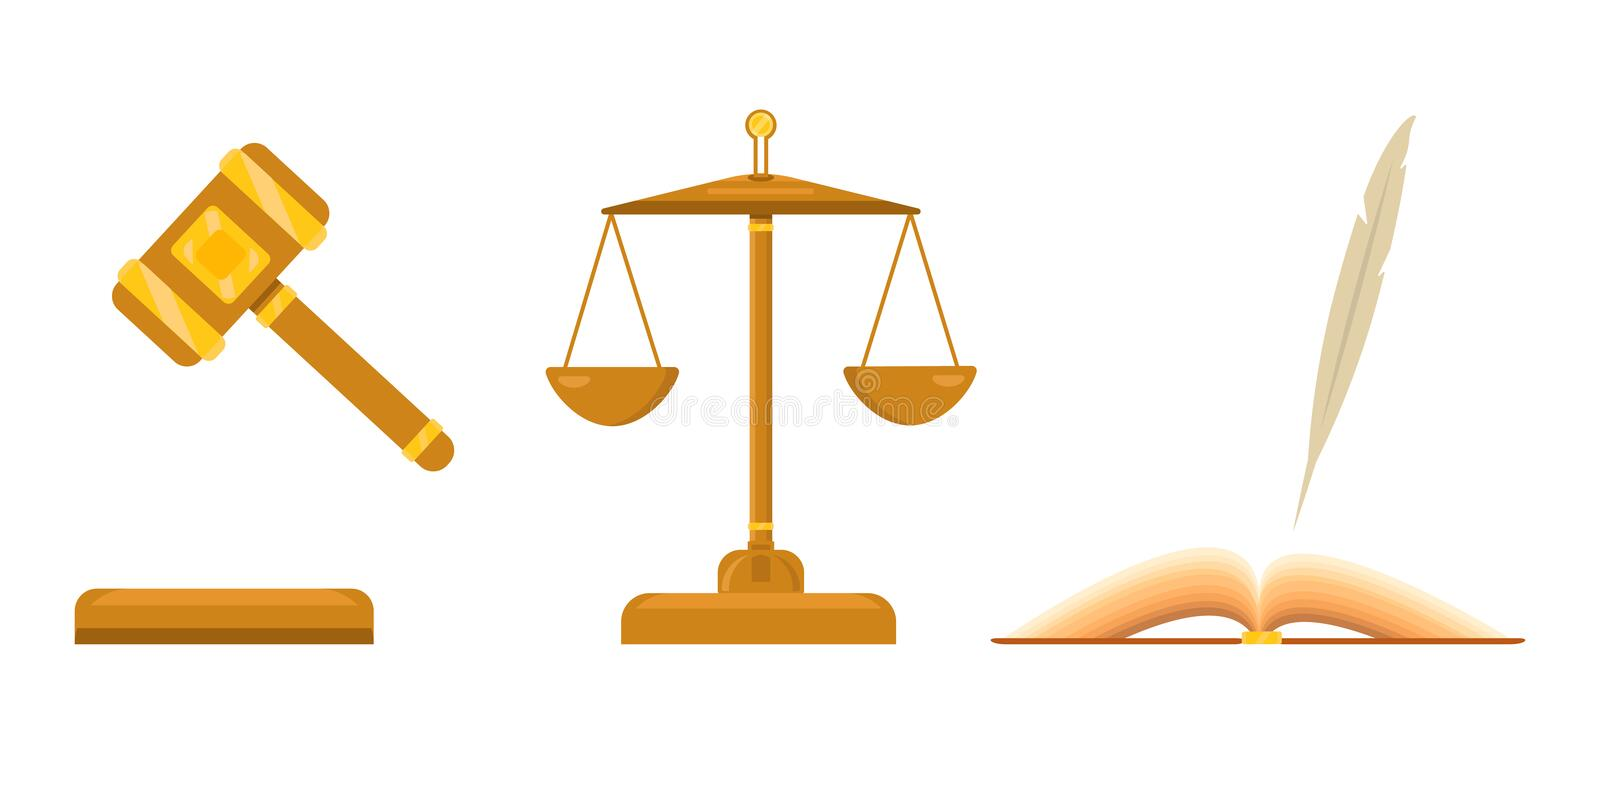 Logo for lawyer firm. Law and justice scales. Open book with pen, feather. Judicial hammer with golden elements stock illustration